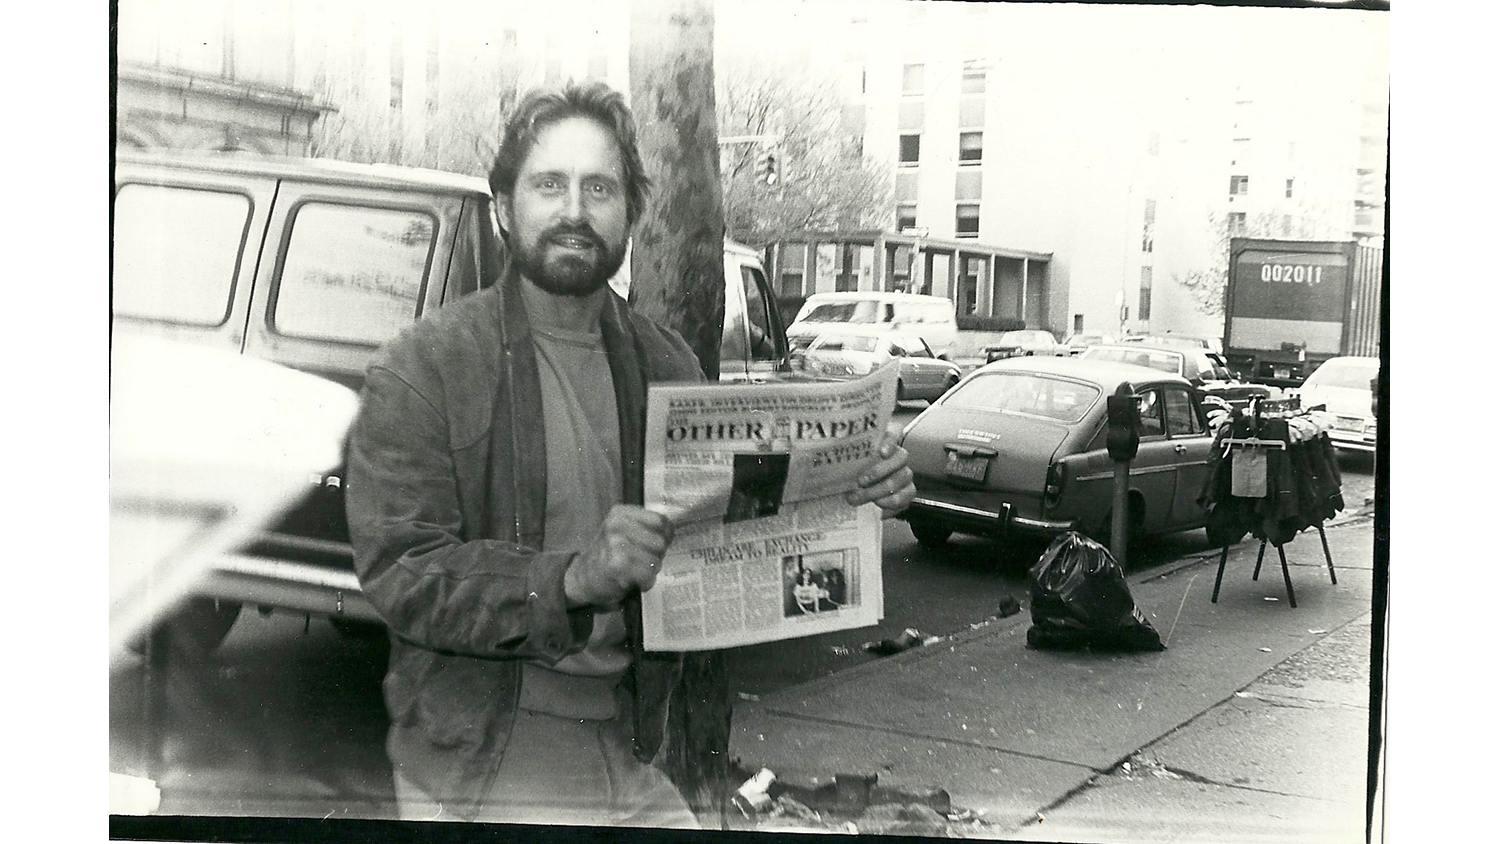 Michael Douglas holding The Other Paper, 1980